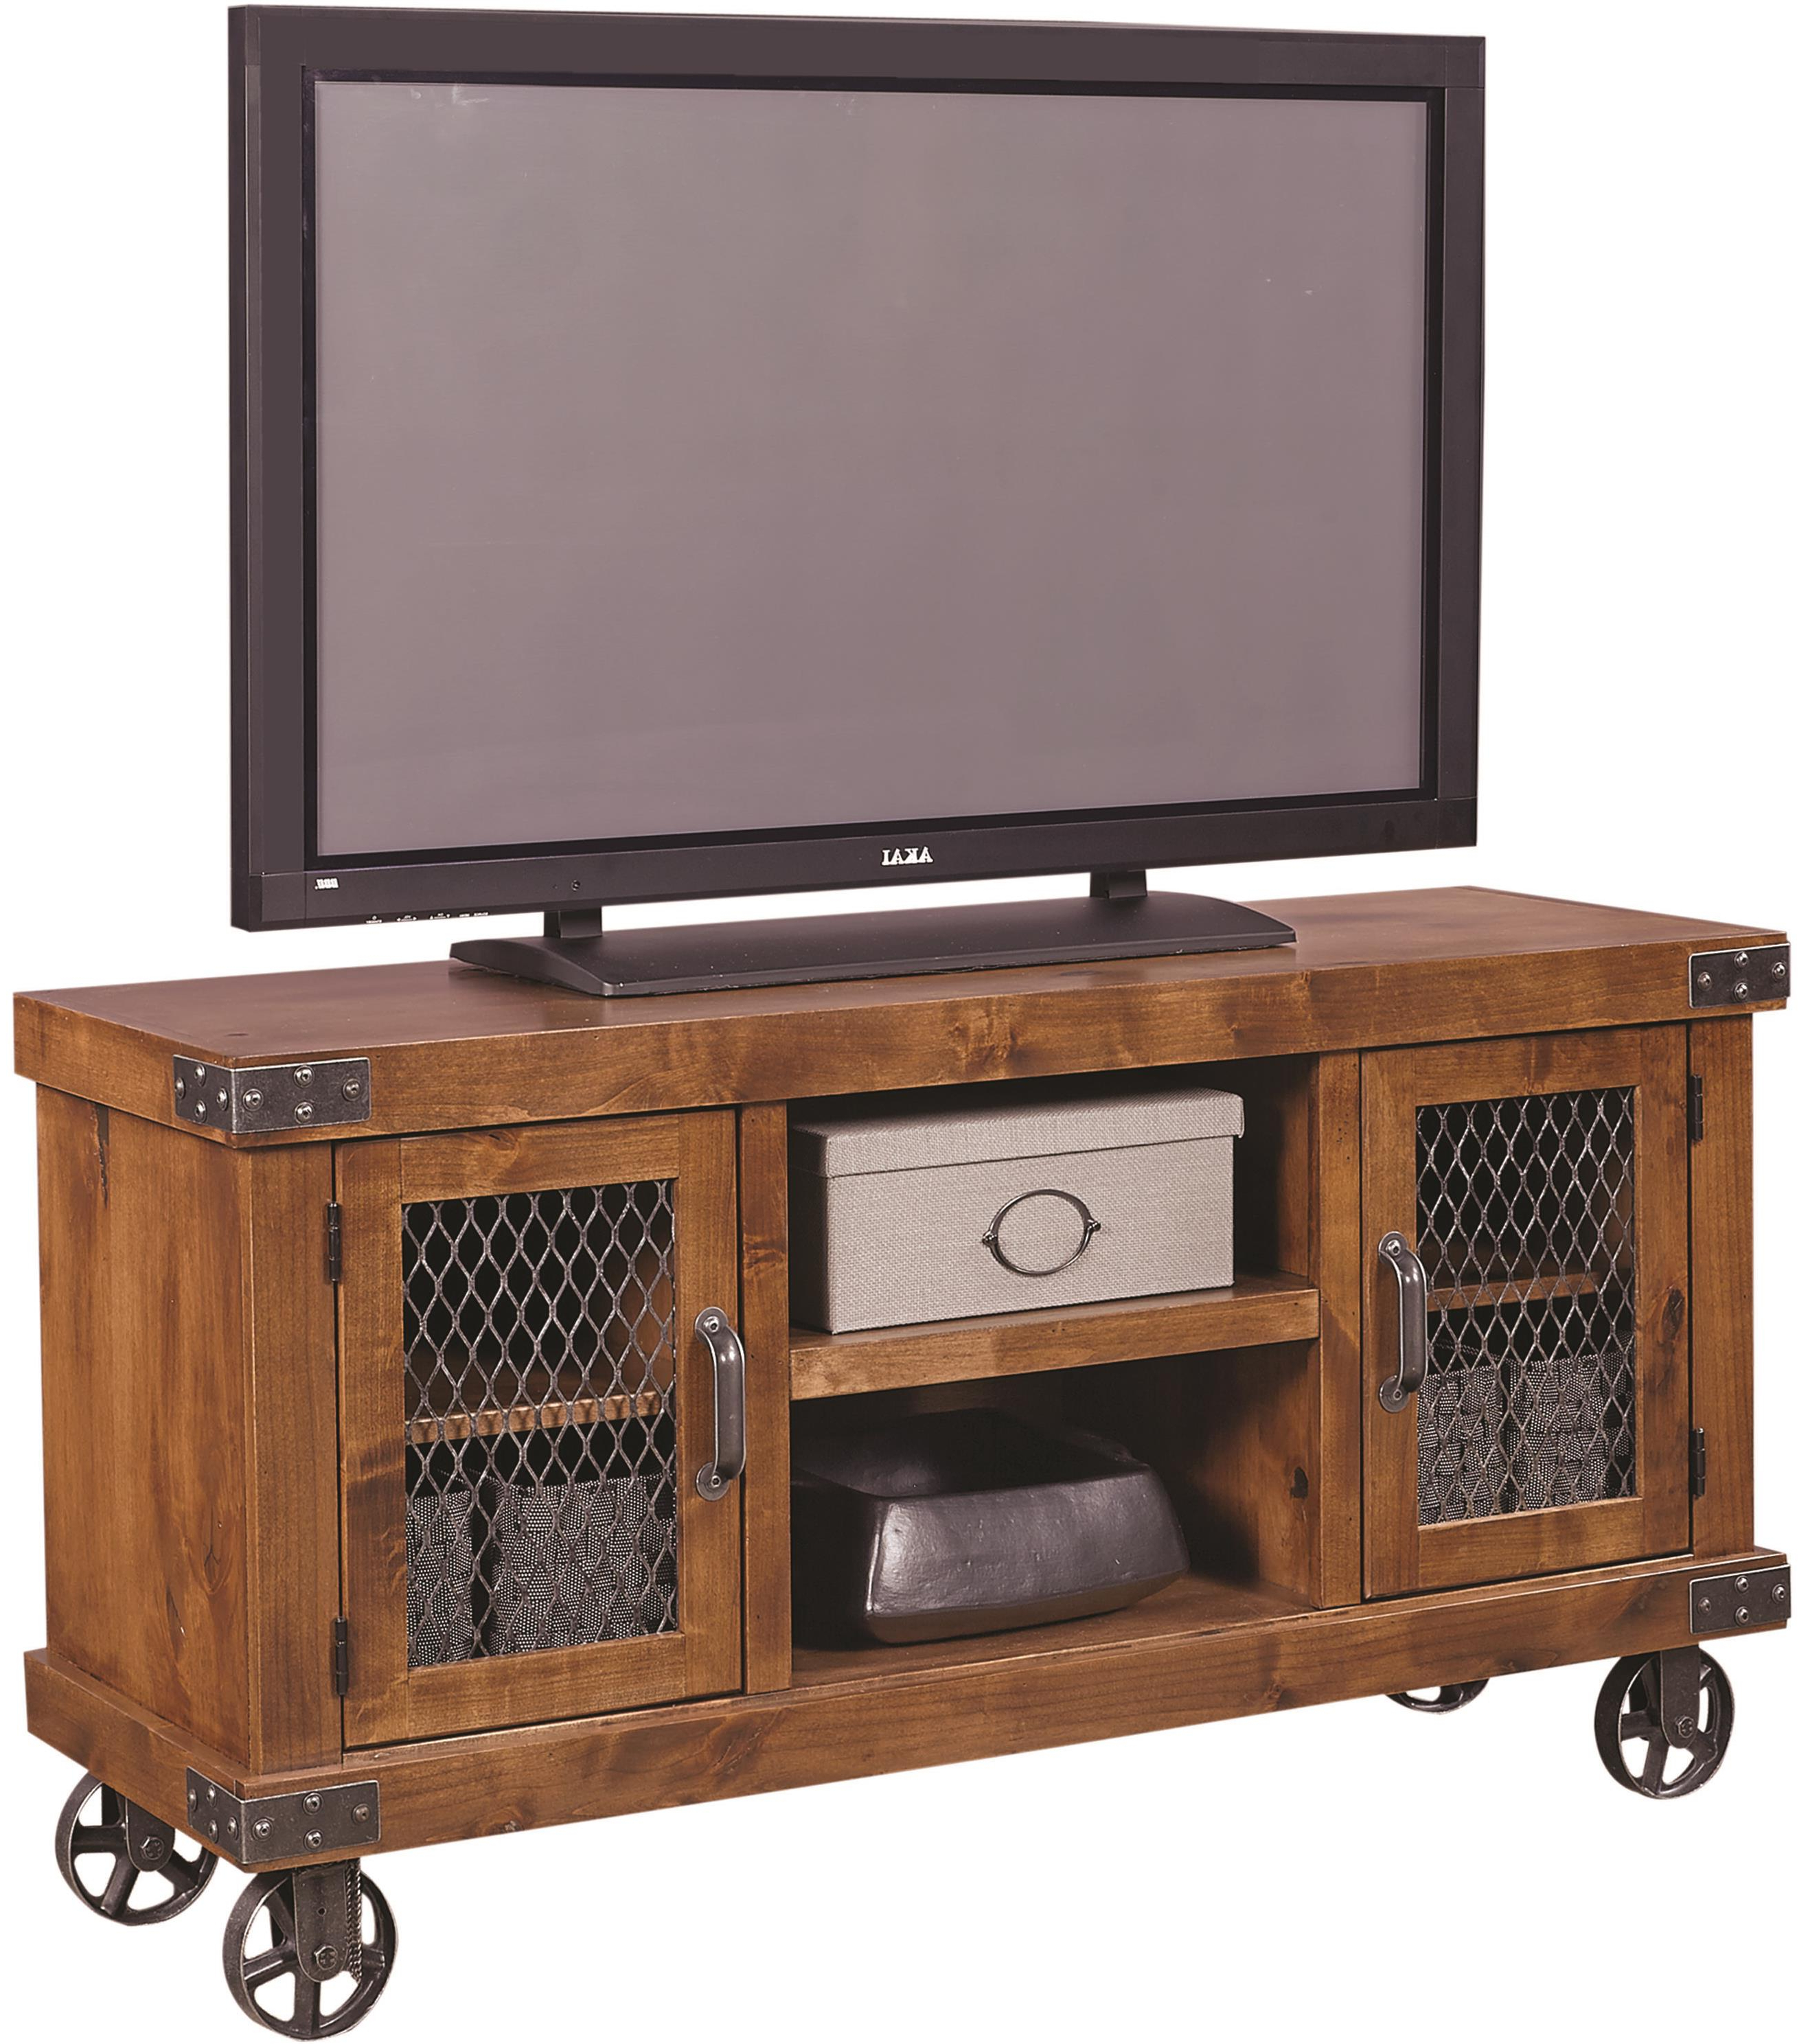 Rustic Corner Tv Stand Canada With Barn Doors Plus White Together Uk Regarding Famous Rustic Corner Tv Stands (View 12 of 20)